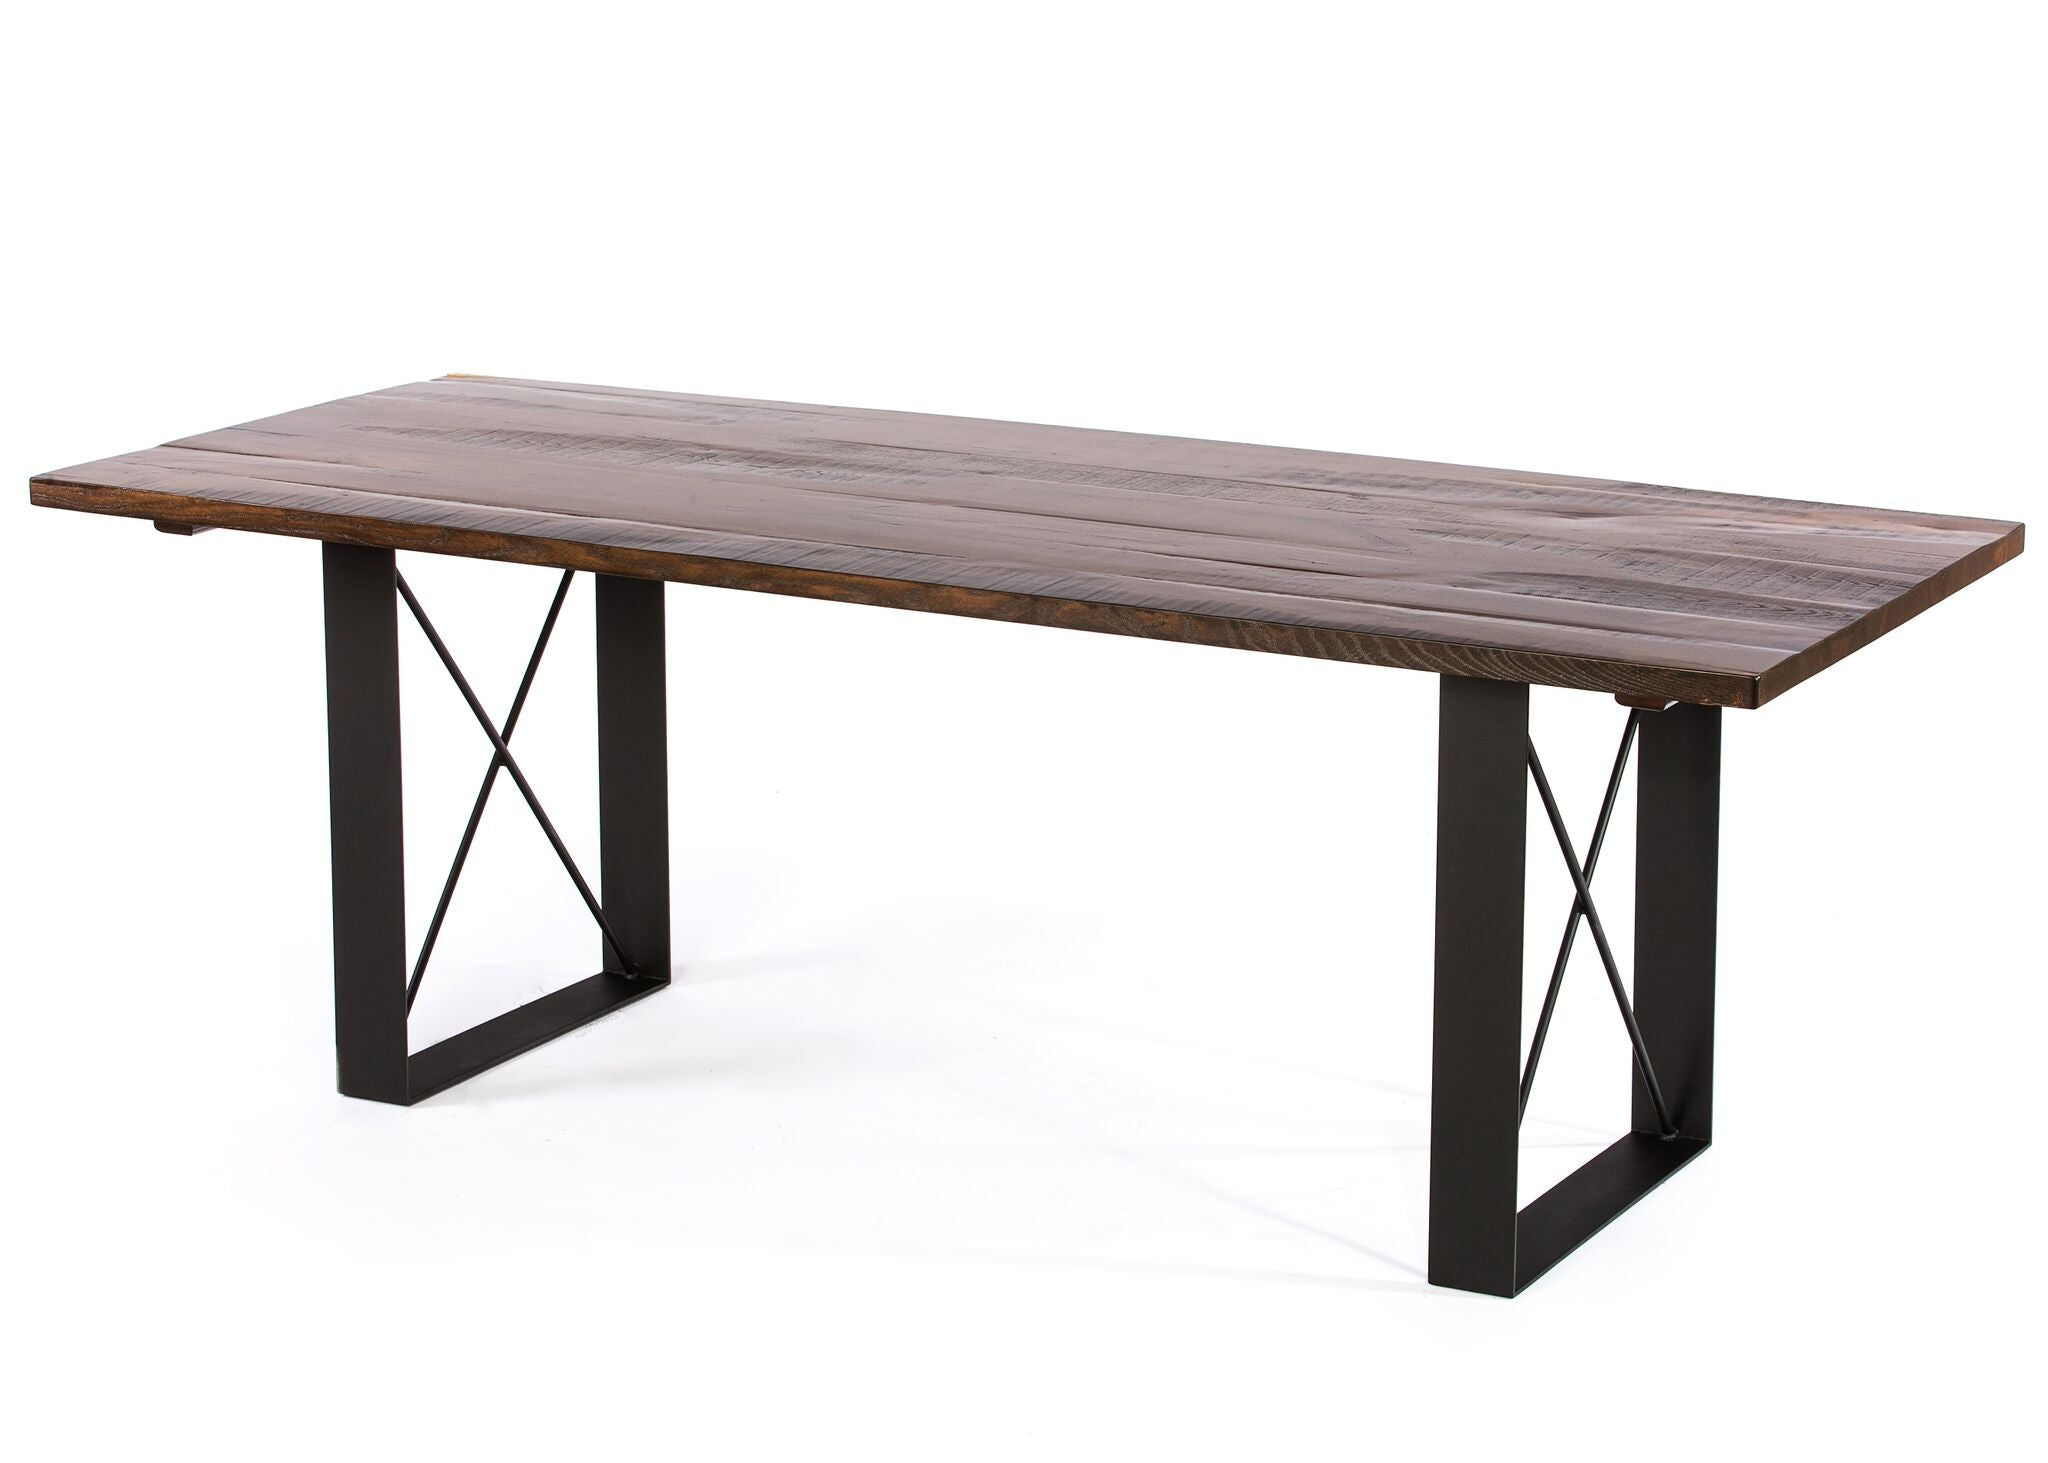 Wood Tables | Soho Table | Natural Reclaimed Oak | Black | CUSTOM SIZE L 96 W 30 H 30 | 2""